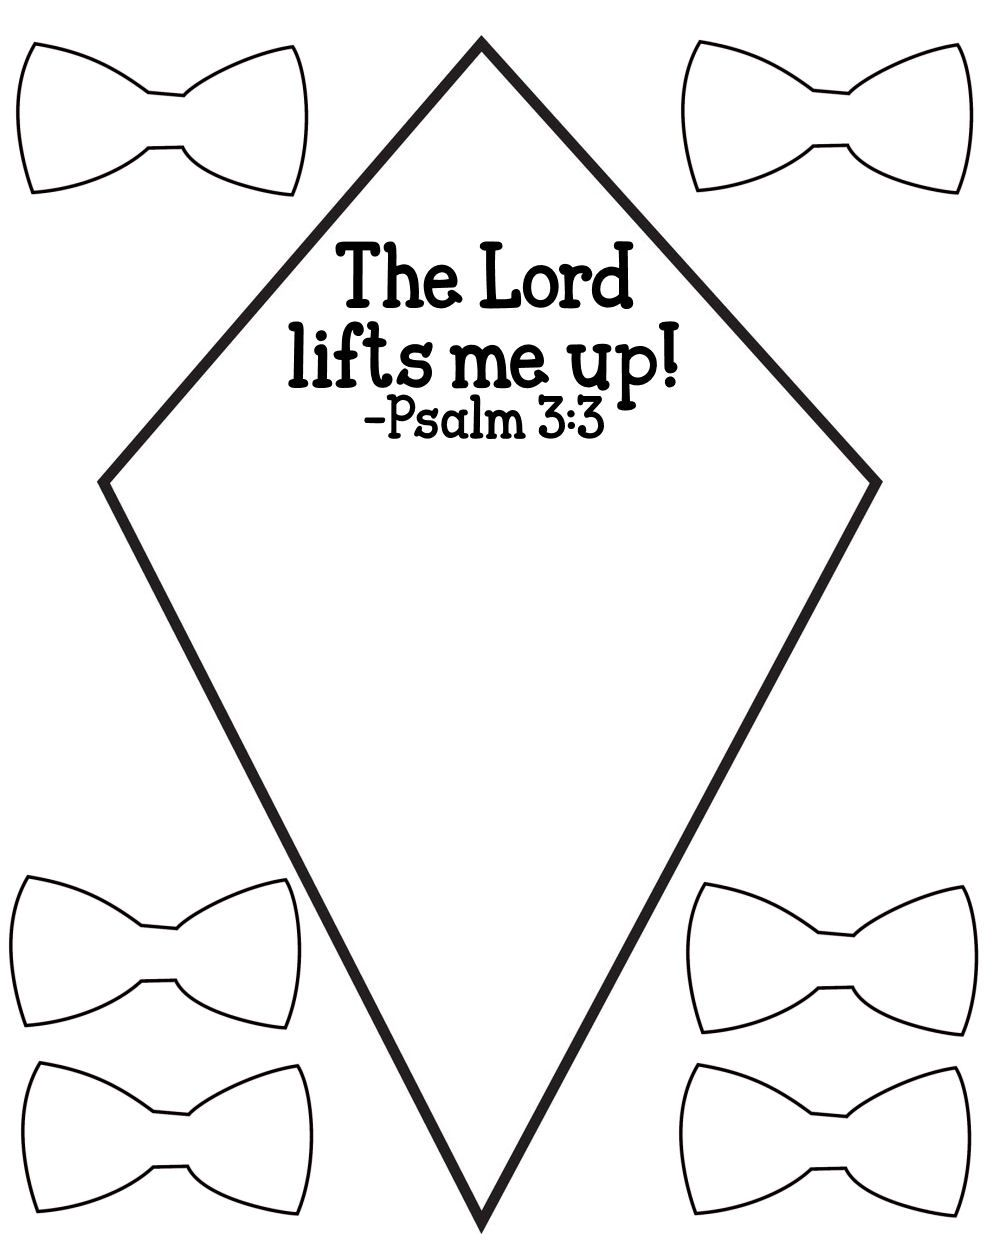 FREE Psalm 3:3 Kids Bible Lesson Activity Printables